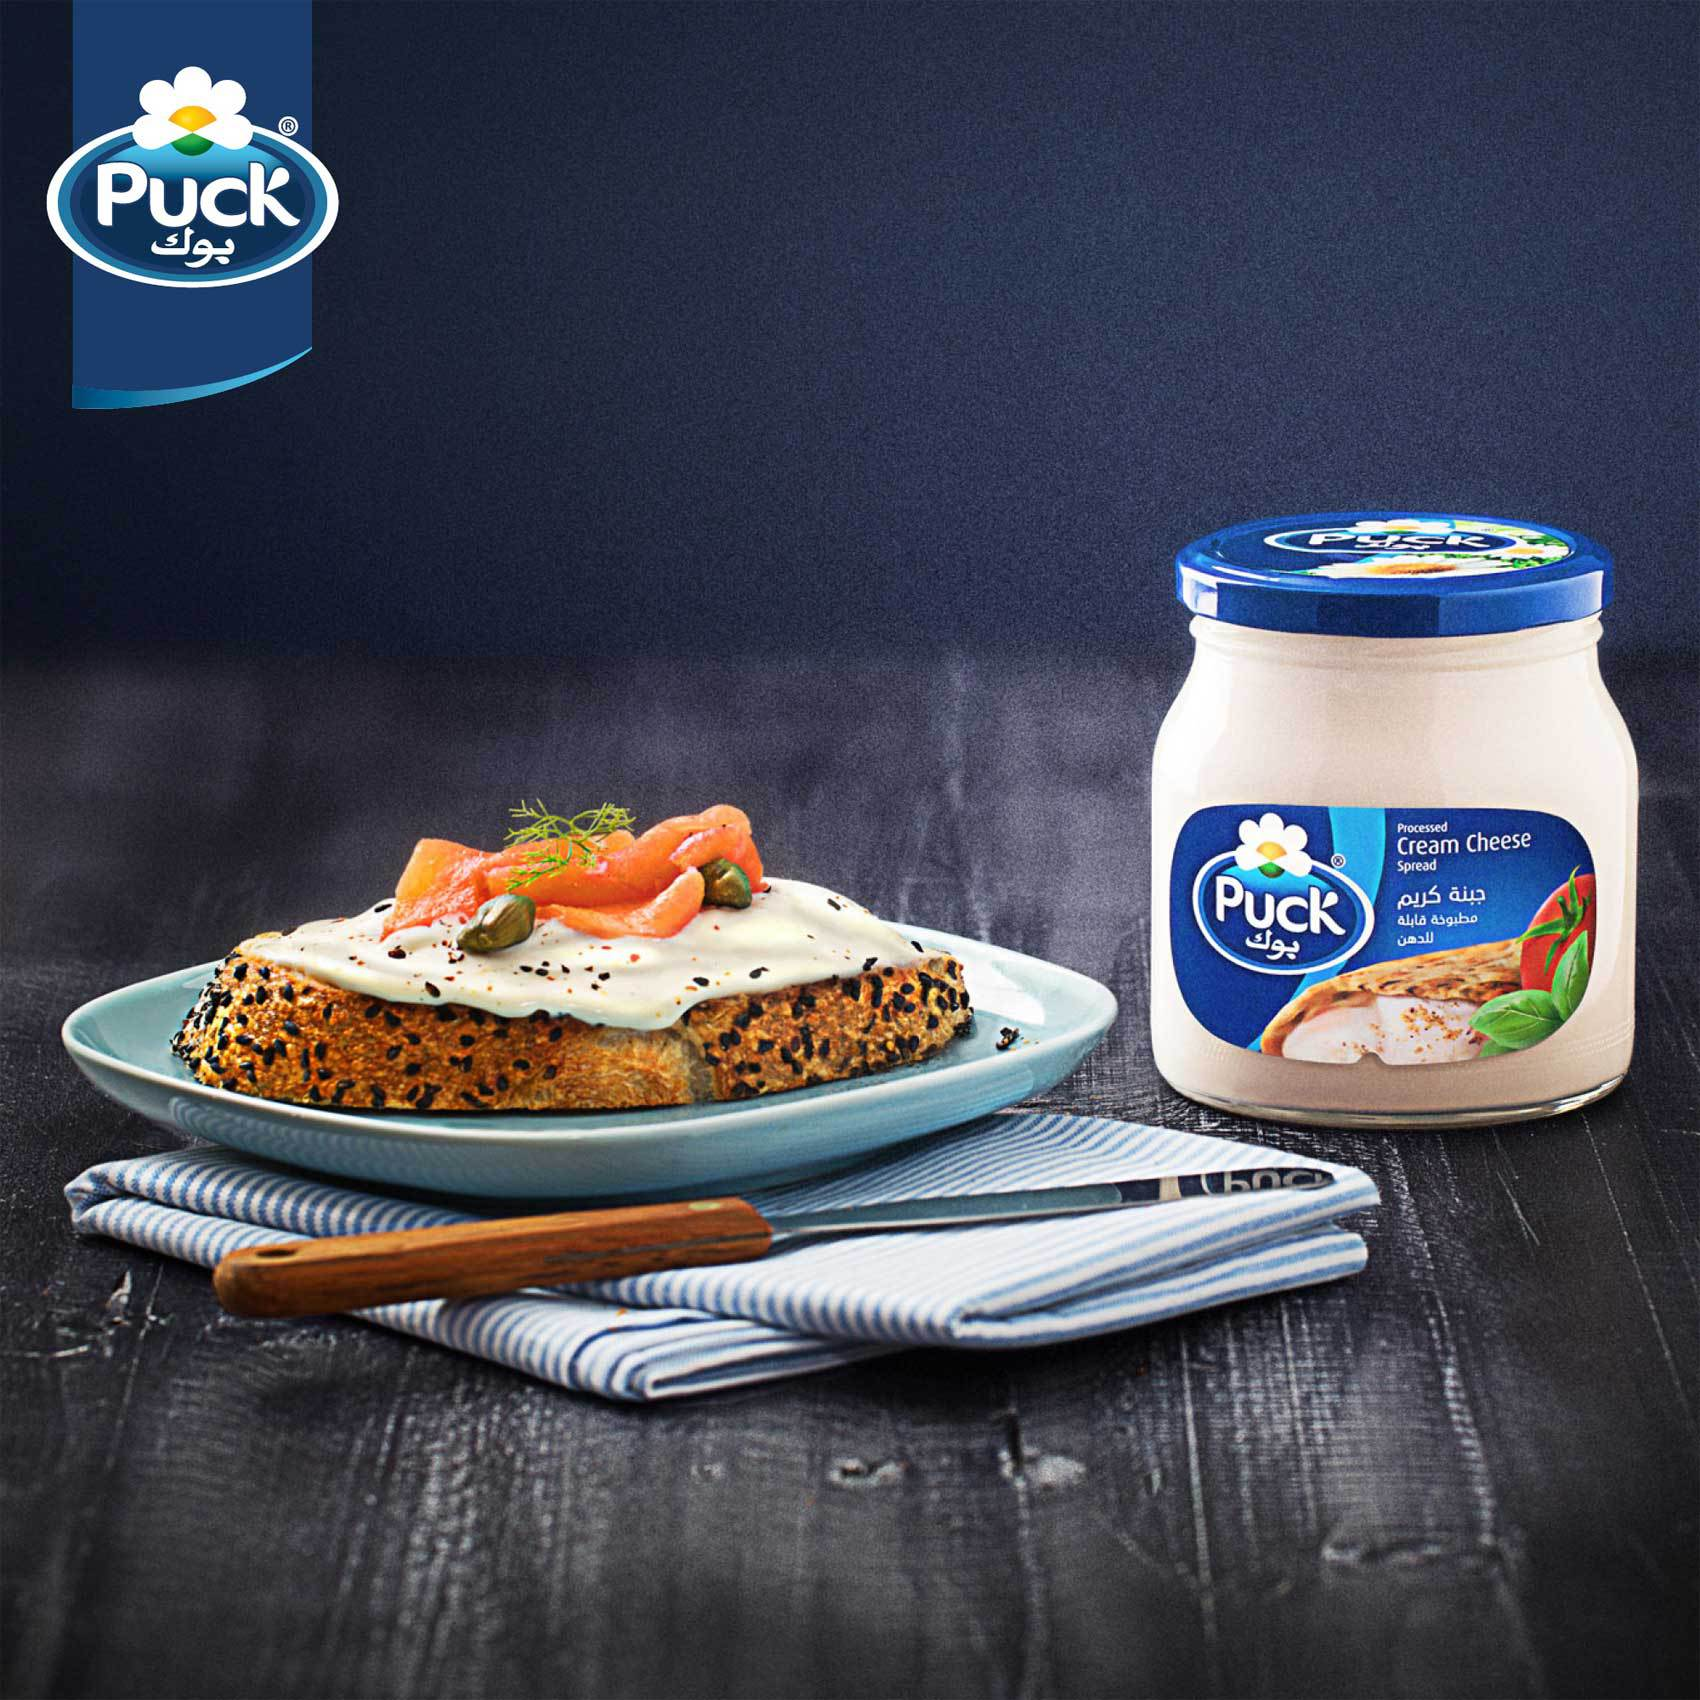 Puck Processed Cream Cheese Spread 910g